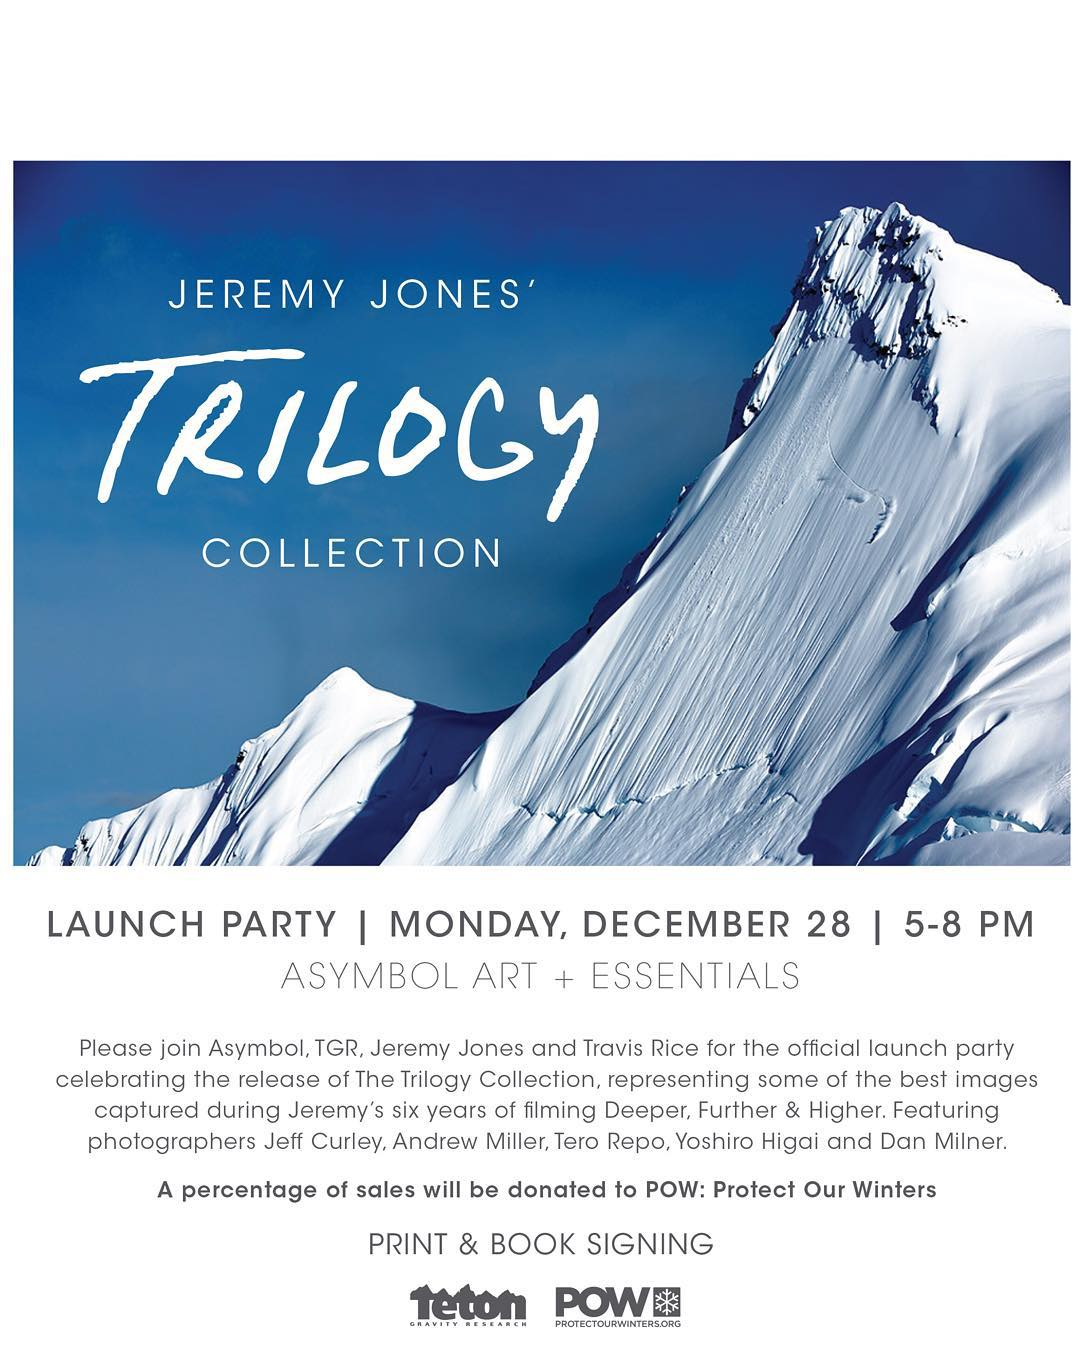 Join @asymbol, @tetongravity and @jeremyjones this Monday the 28th in launching the Trilogy Collection.  Jeremy will be there to sing prints, as well as his new book, No Words For The Way Down.  Come down to the gallery for some wine, beer, art, and...